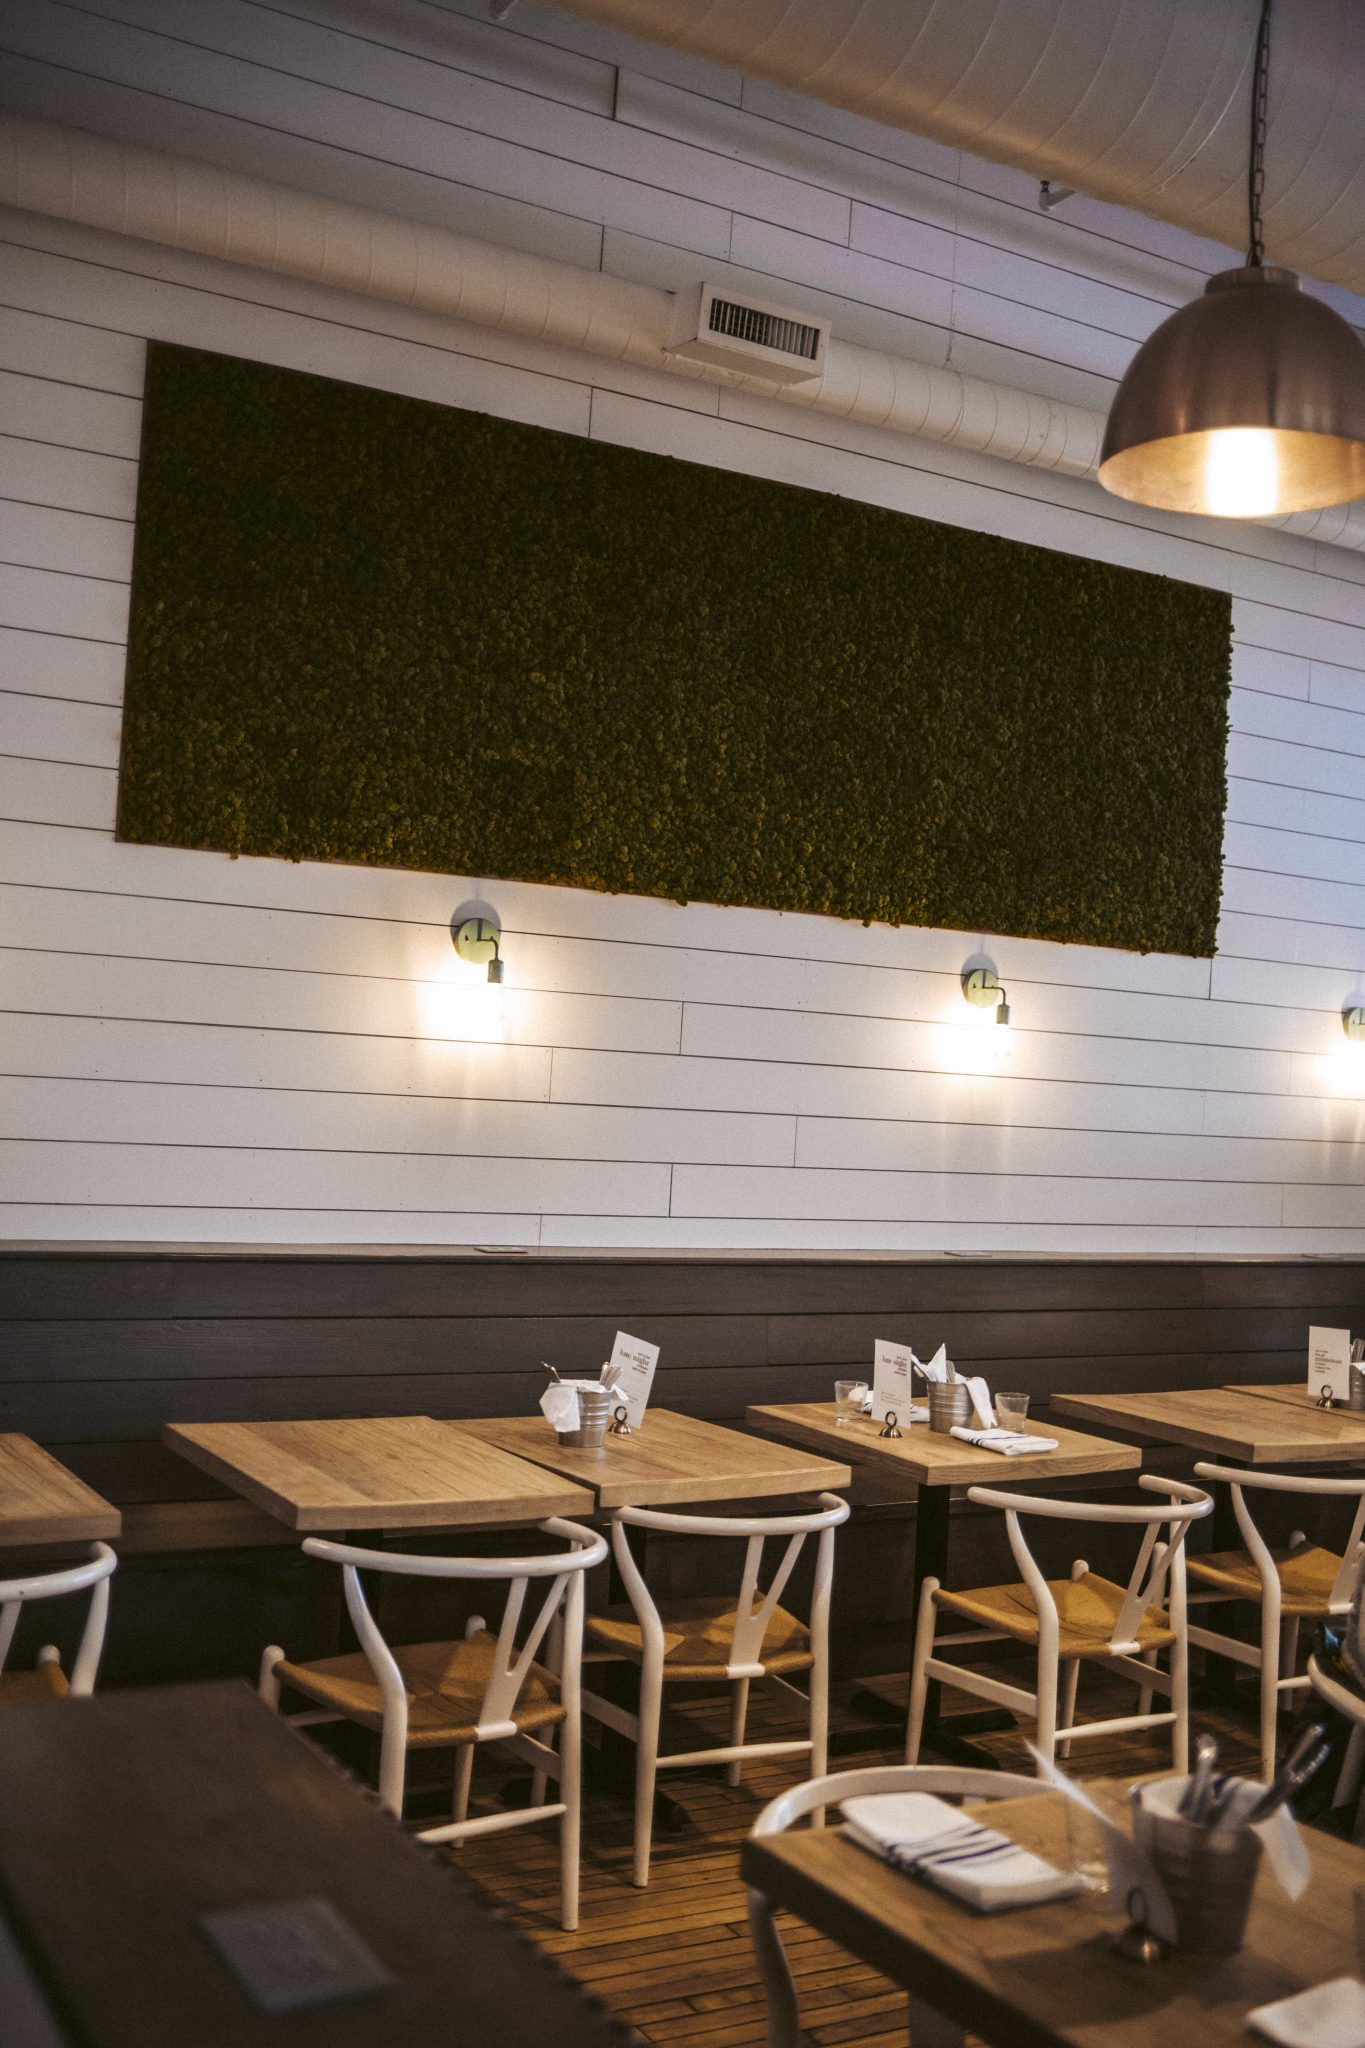 Good Restaurants in Indianapolis: The Garden Table by popular Indianapolis blogger Tales & Turbans